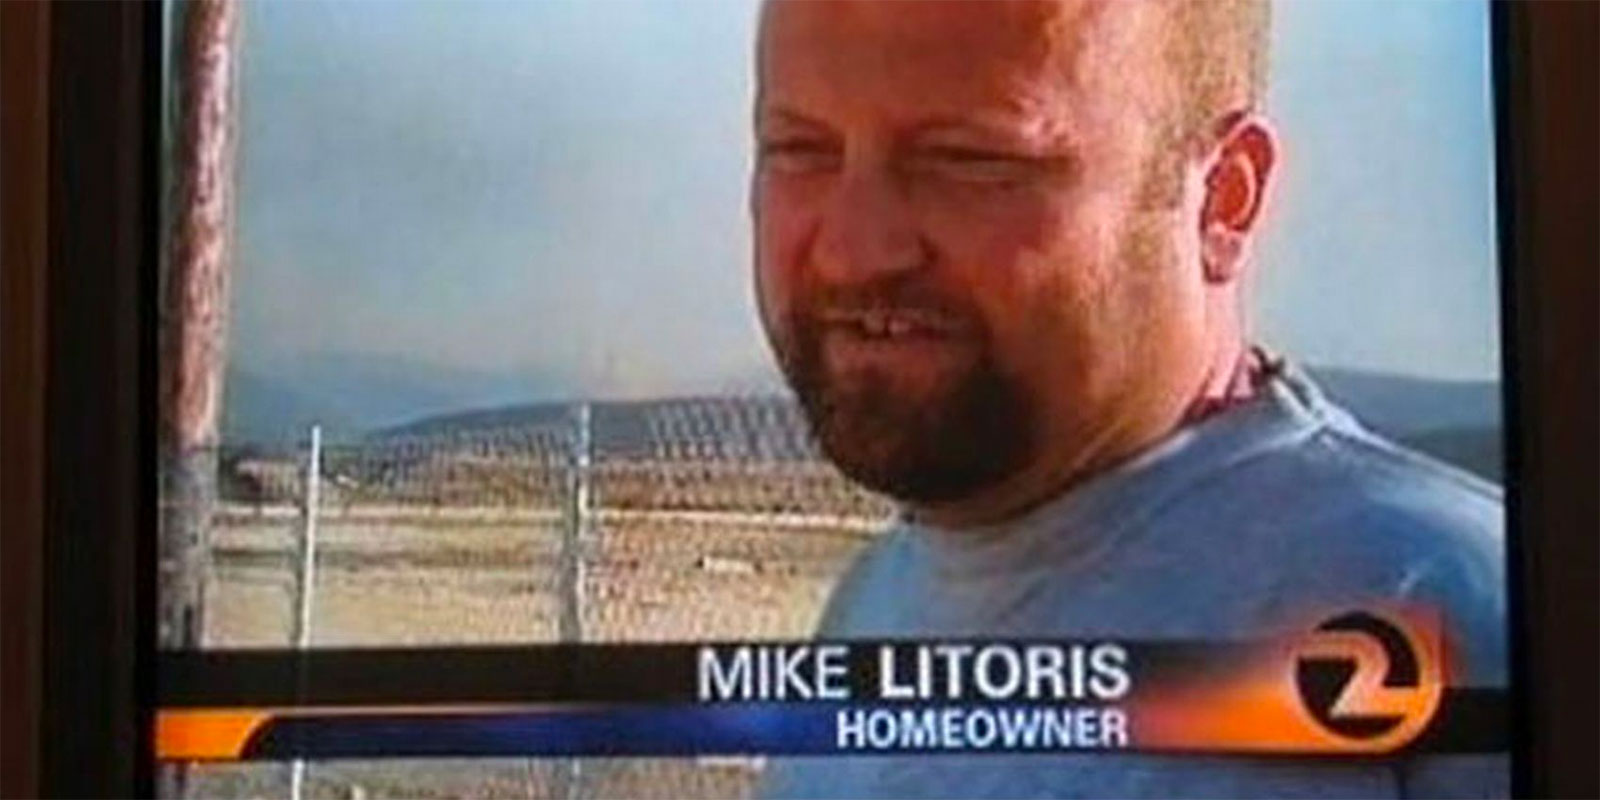 11 Unfortunate (and Possibly Fake) Names On TV News Graphics